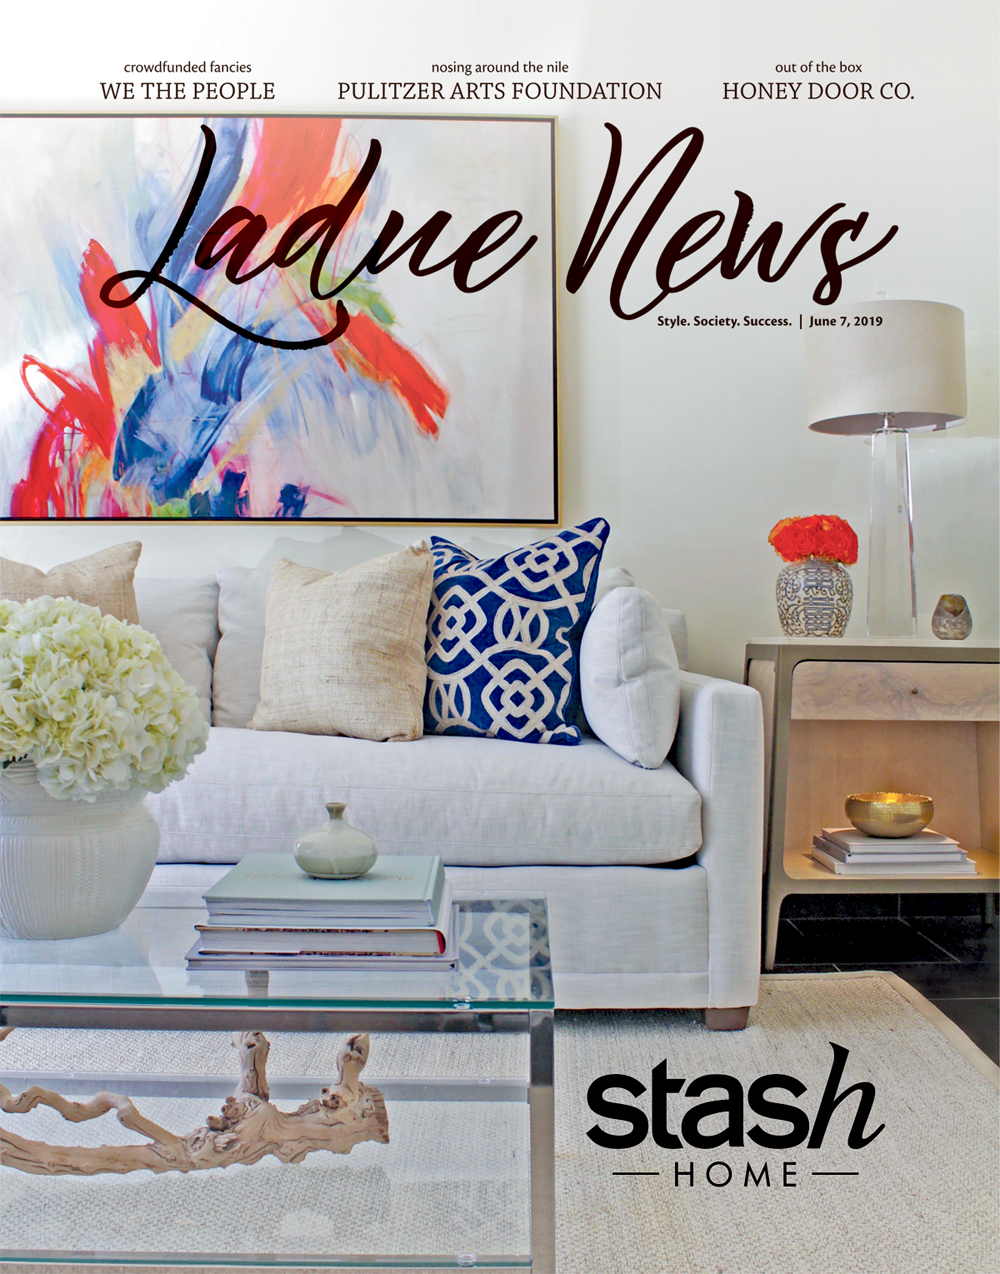 Stash Home: Home STYLE Meets Home Values